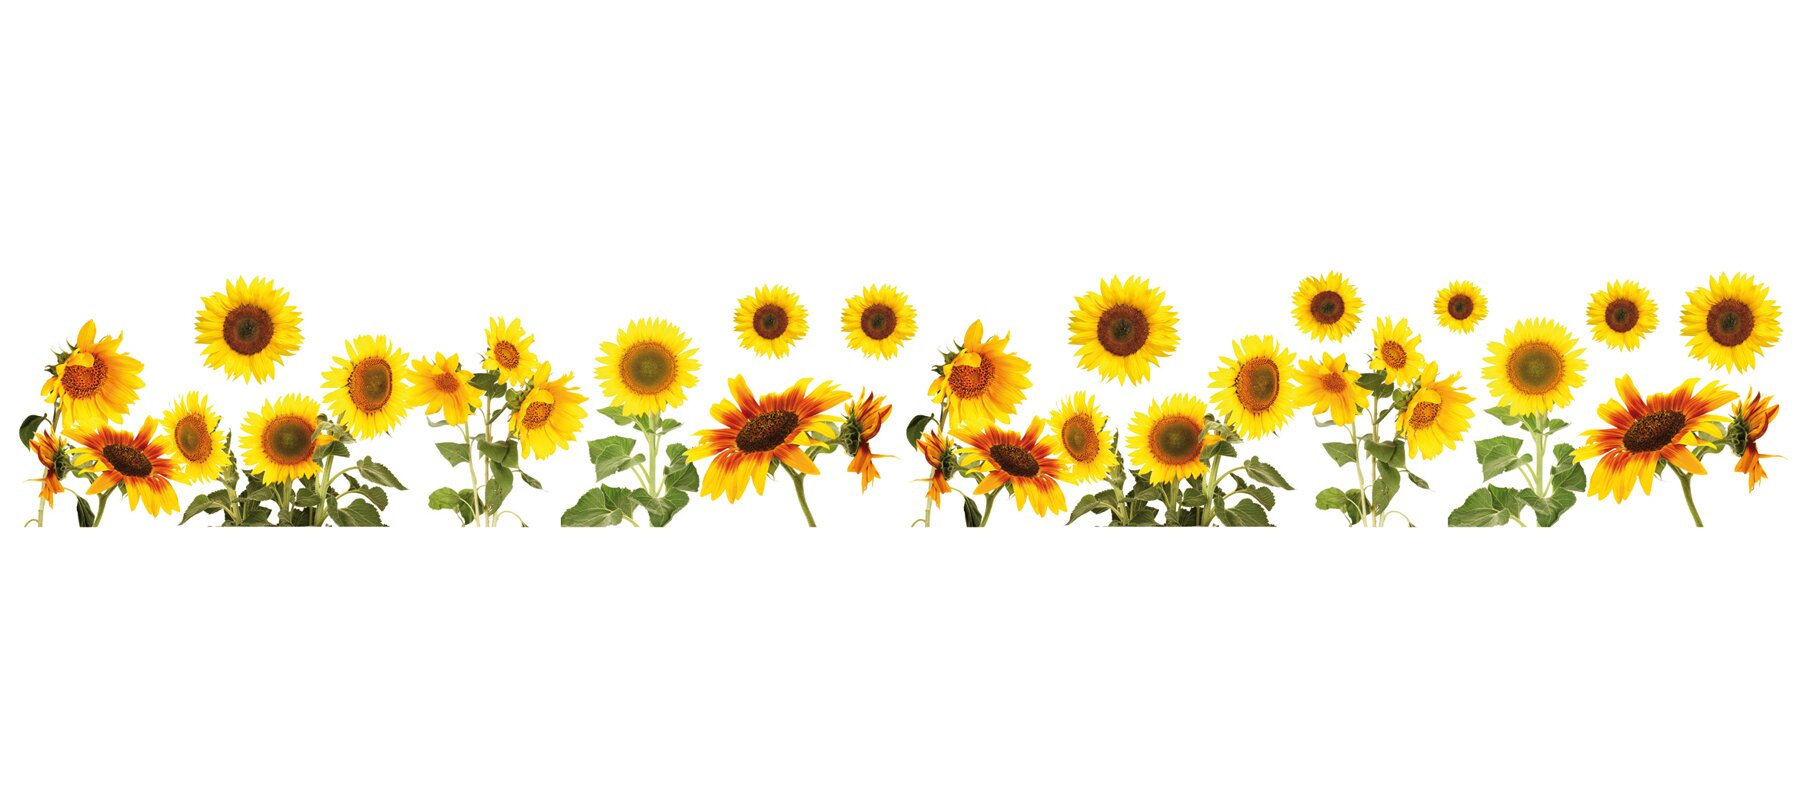 Wallpops Sunflowers Border Wall Decal Amp Reviews Wayfair